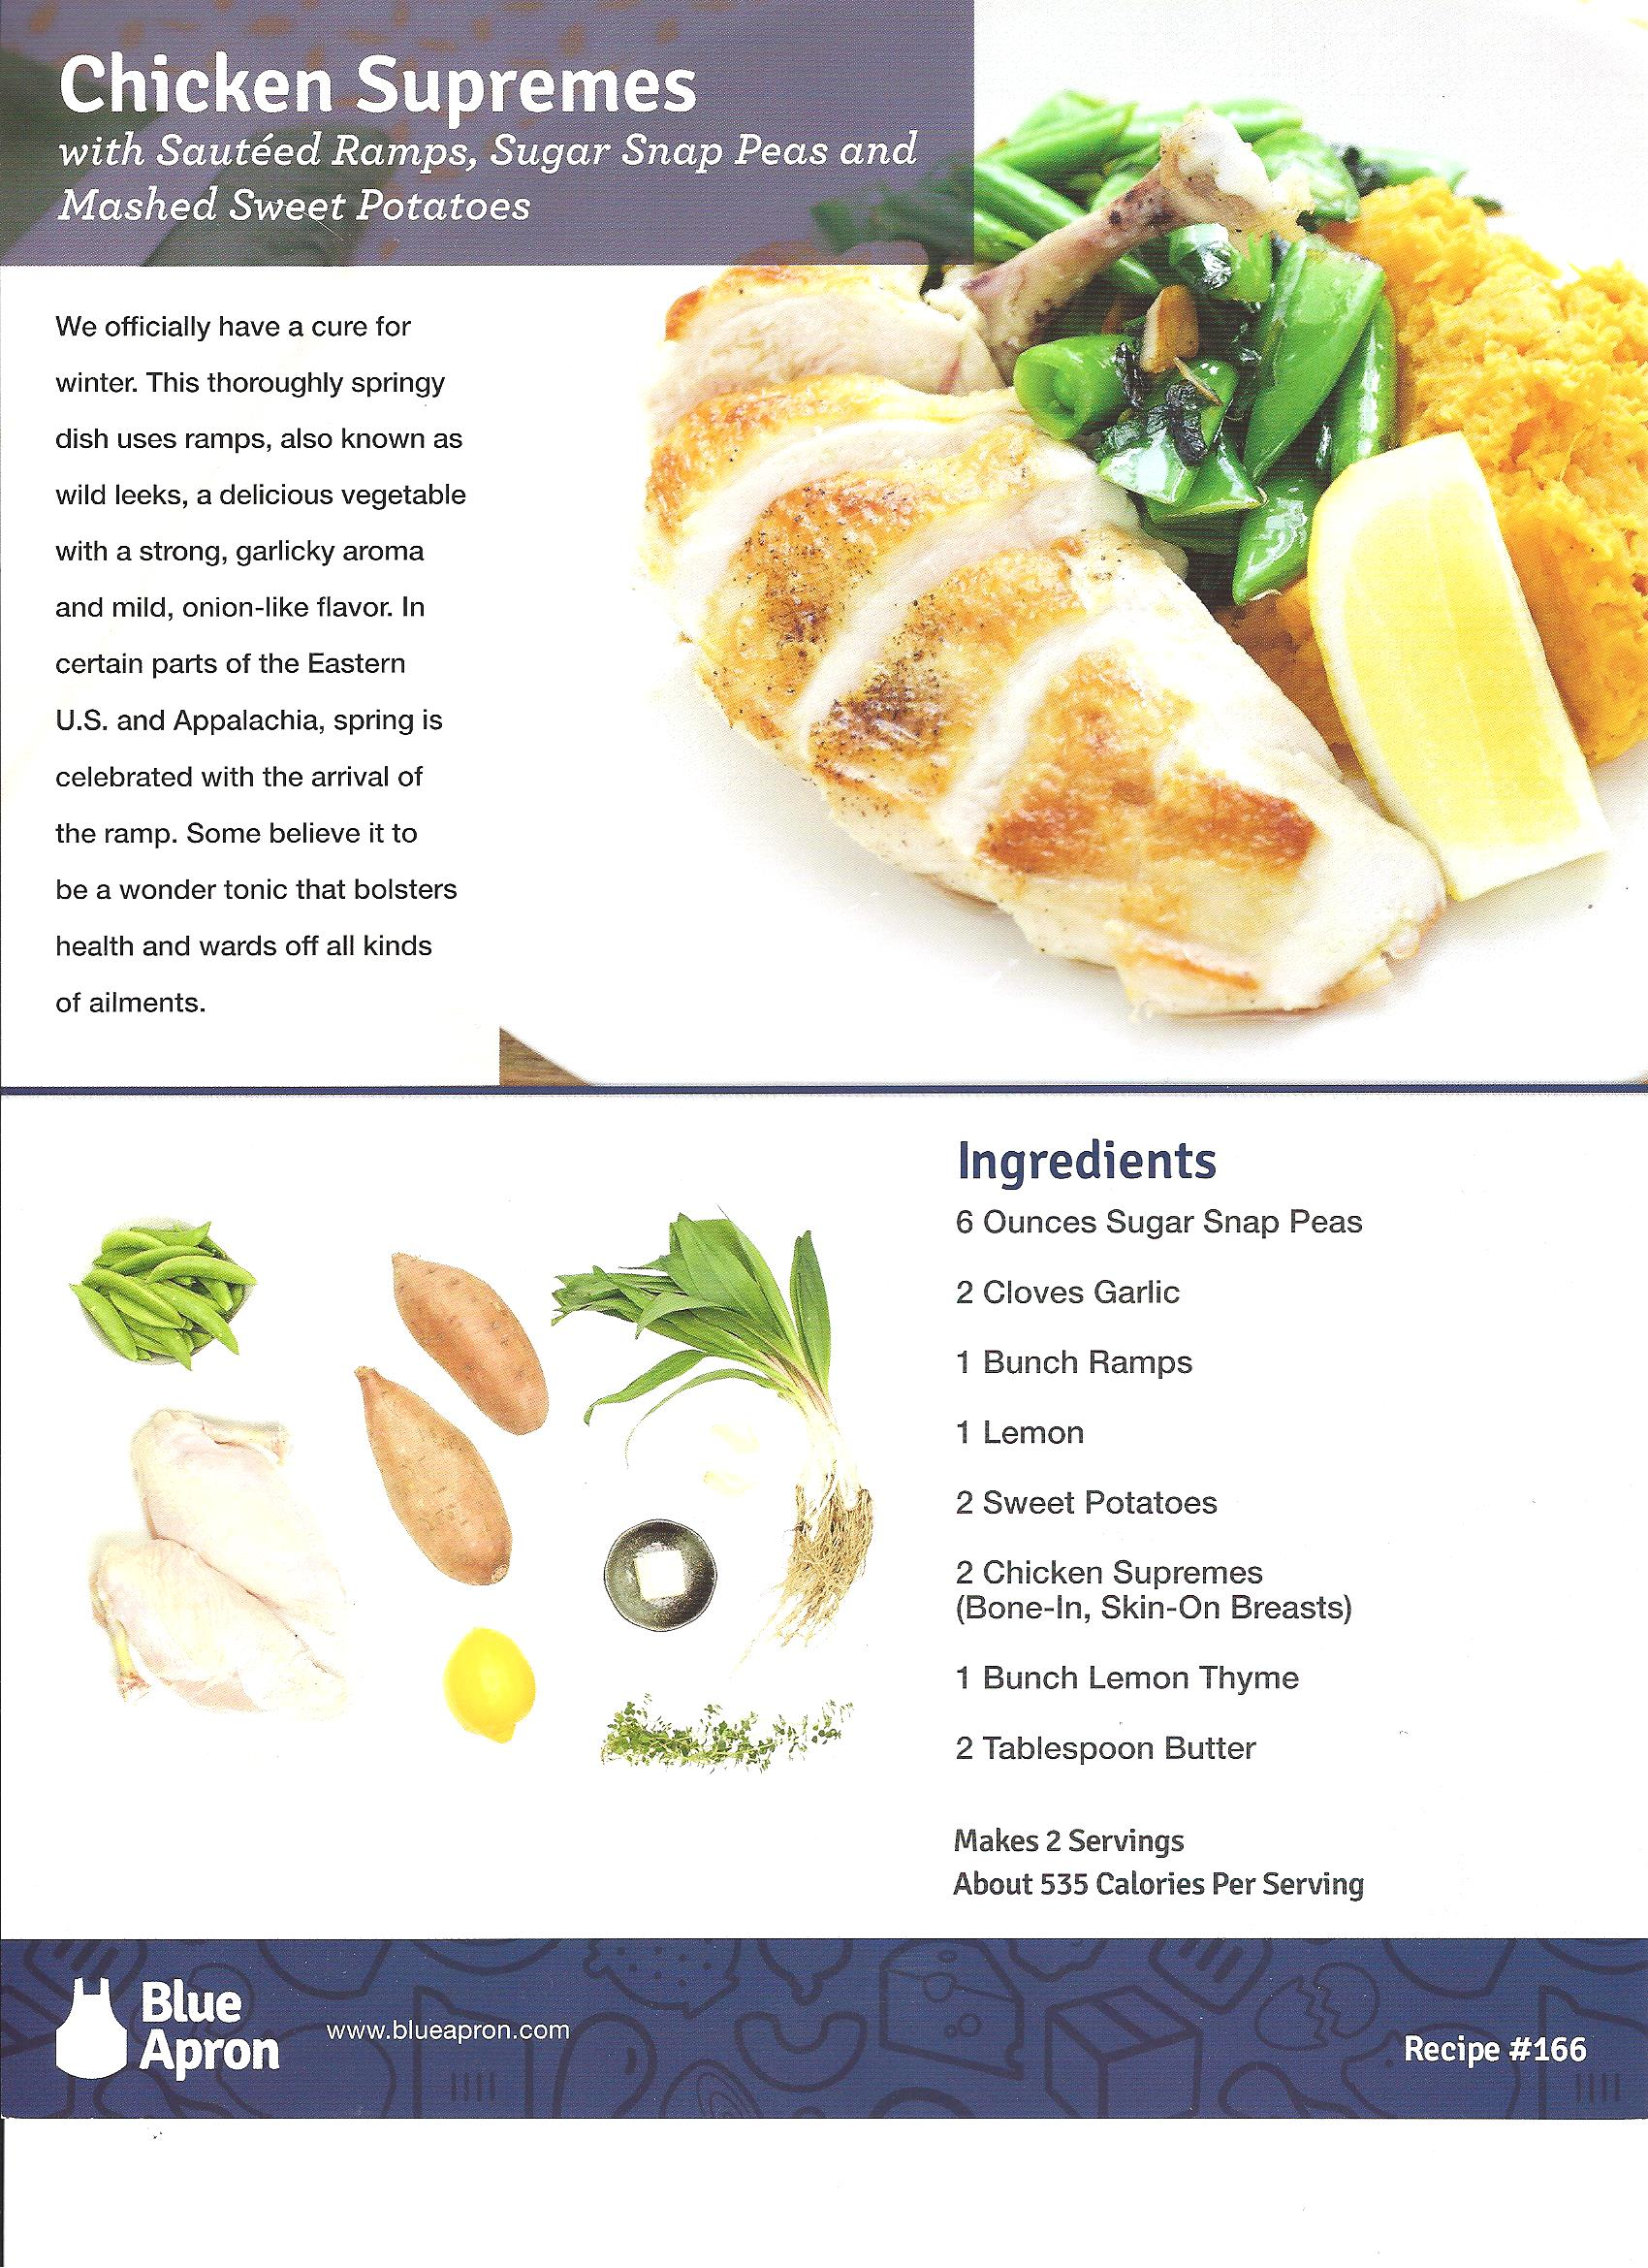 Here are the ingredients and background on the meal from Blue Apron.